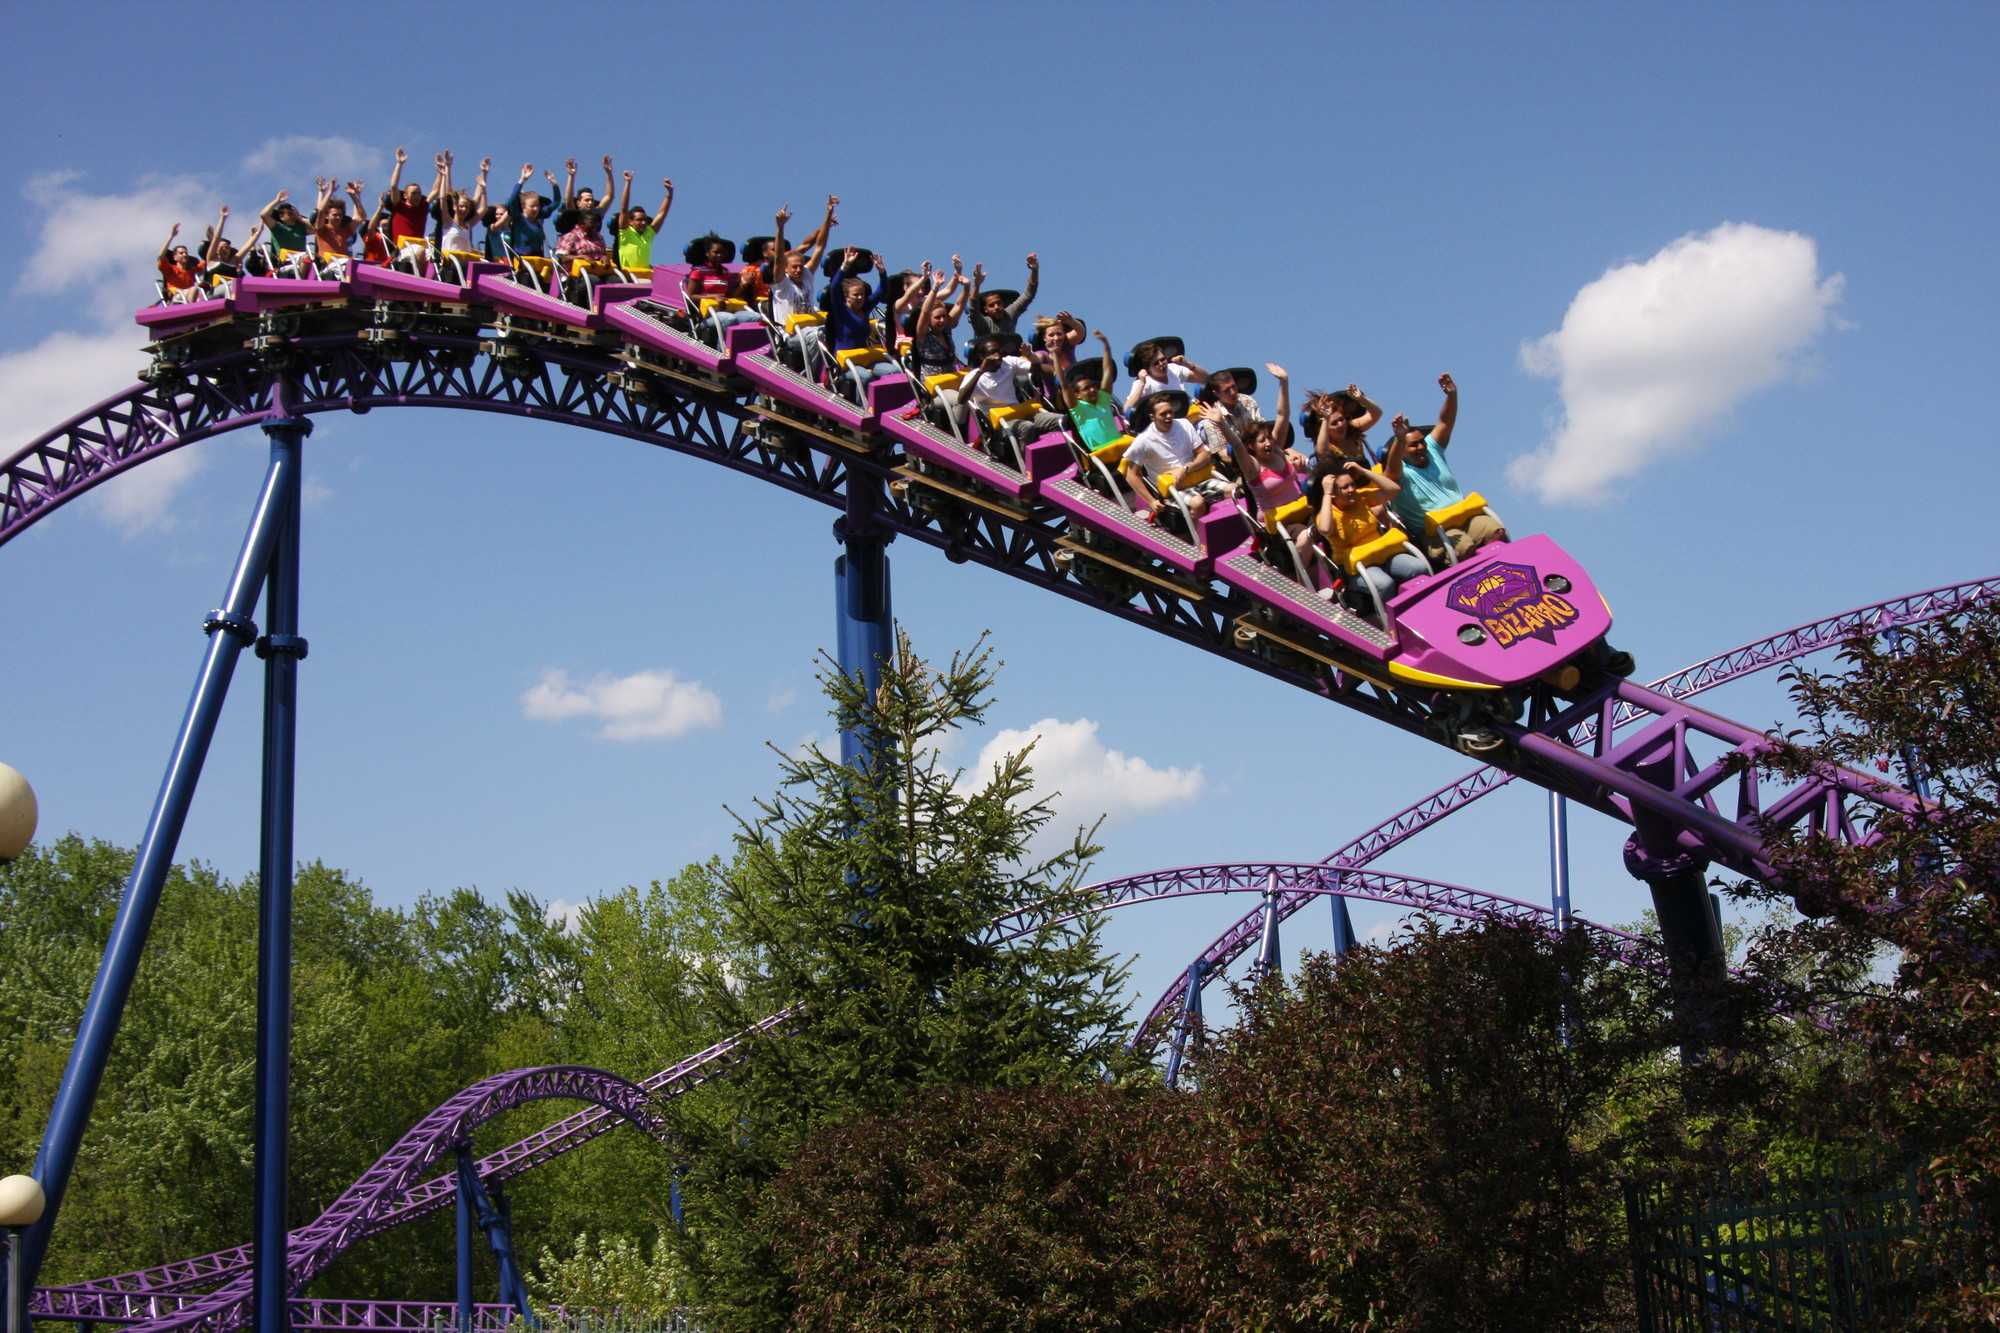 Six Flags New England in Agawam, Mass., is hosting Pride in the Park on Sept. 6 and then its Halloween celebration, Fright Fest, throughout October.